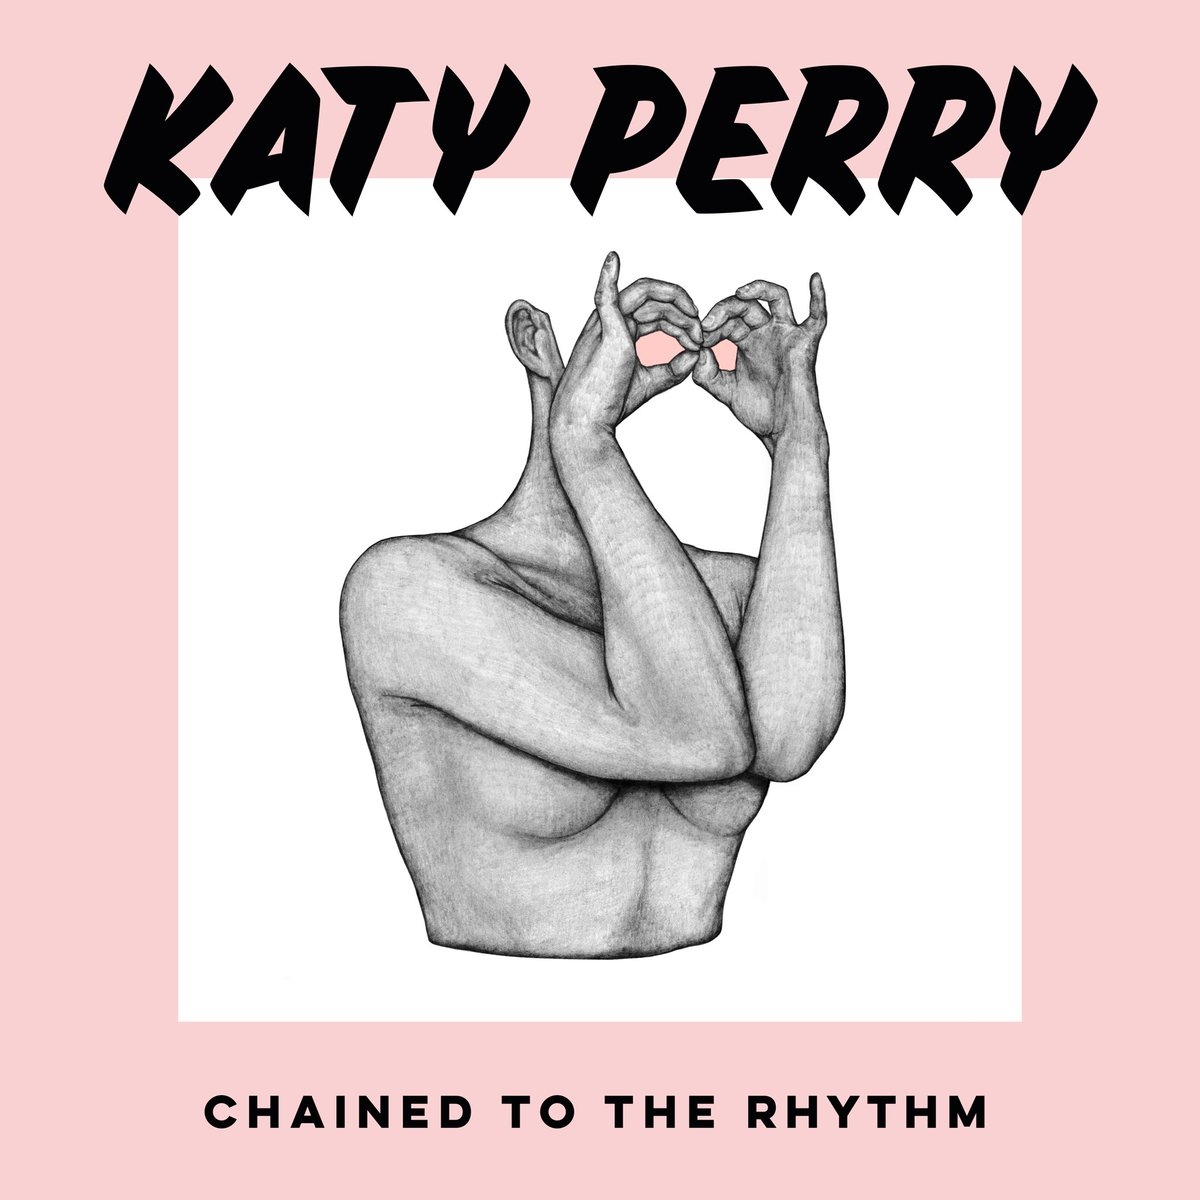 KATY PERRY finally releases NEW MUSIC!